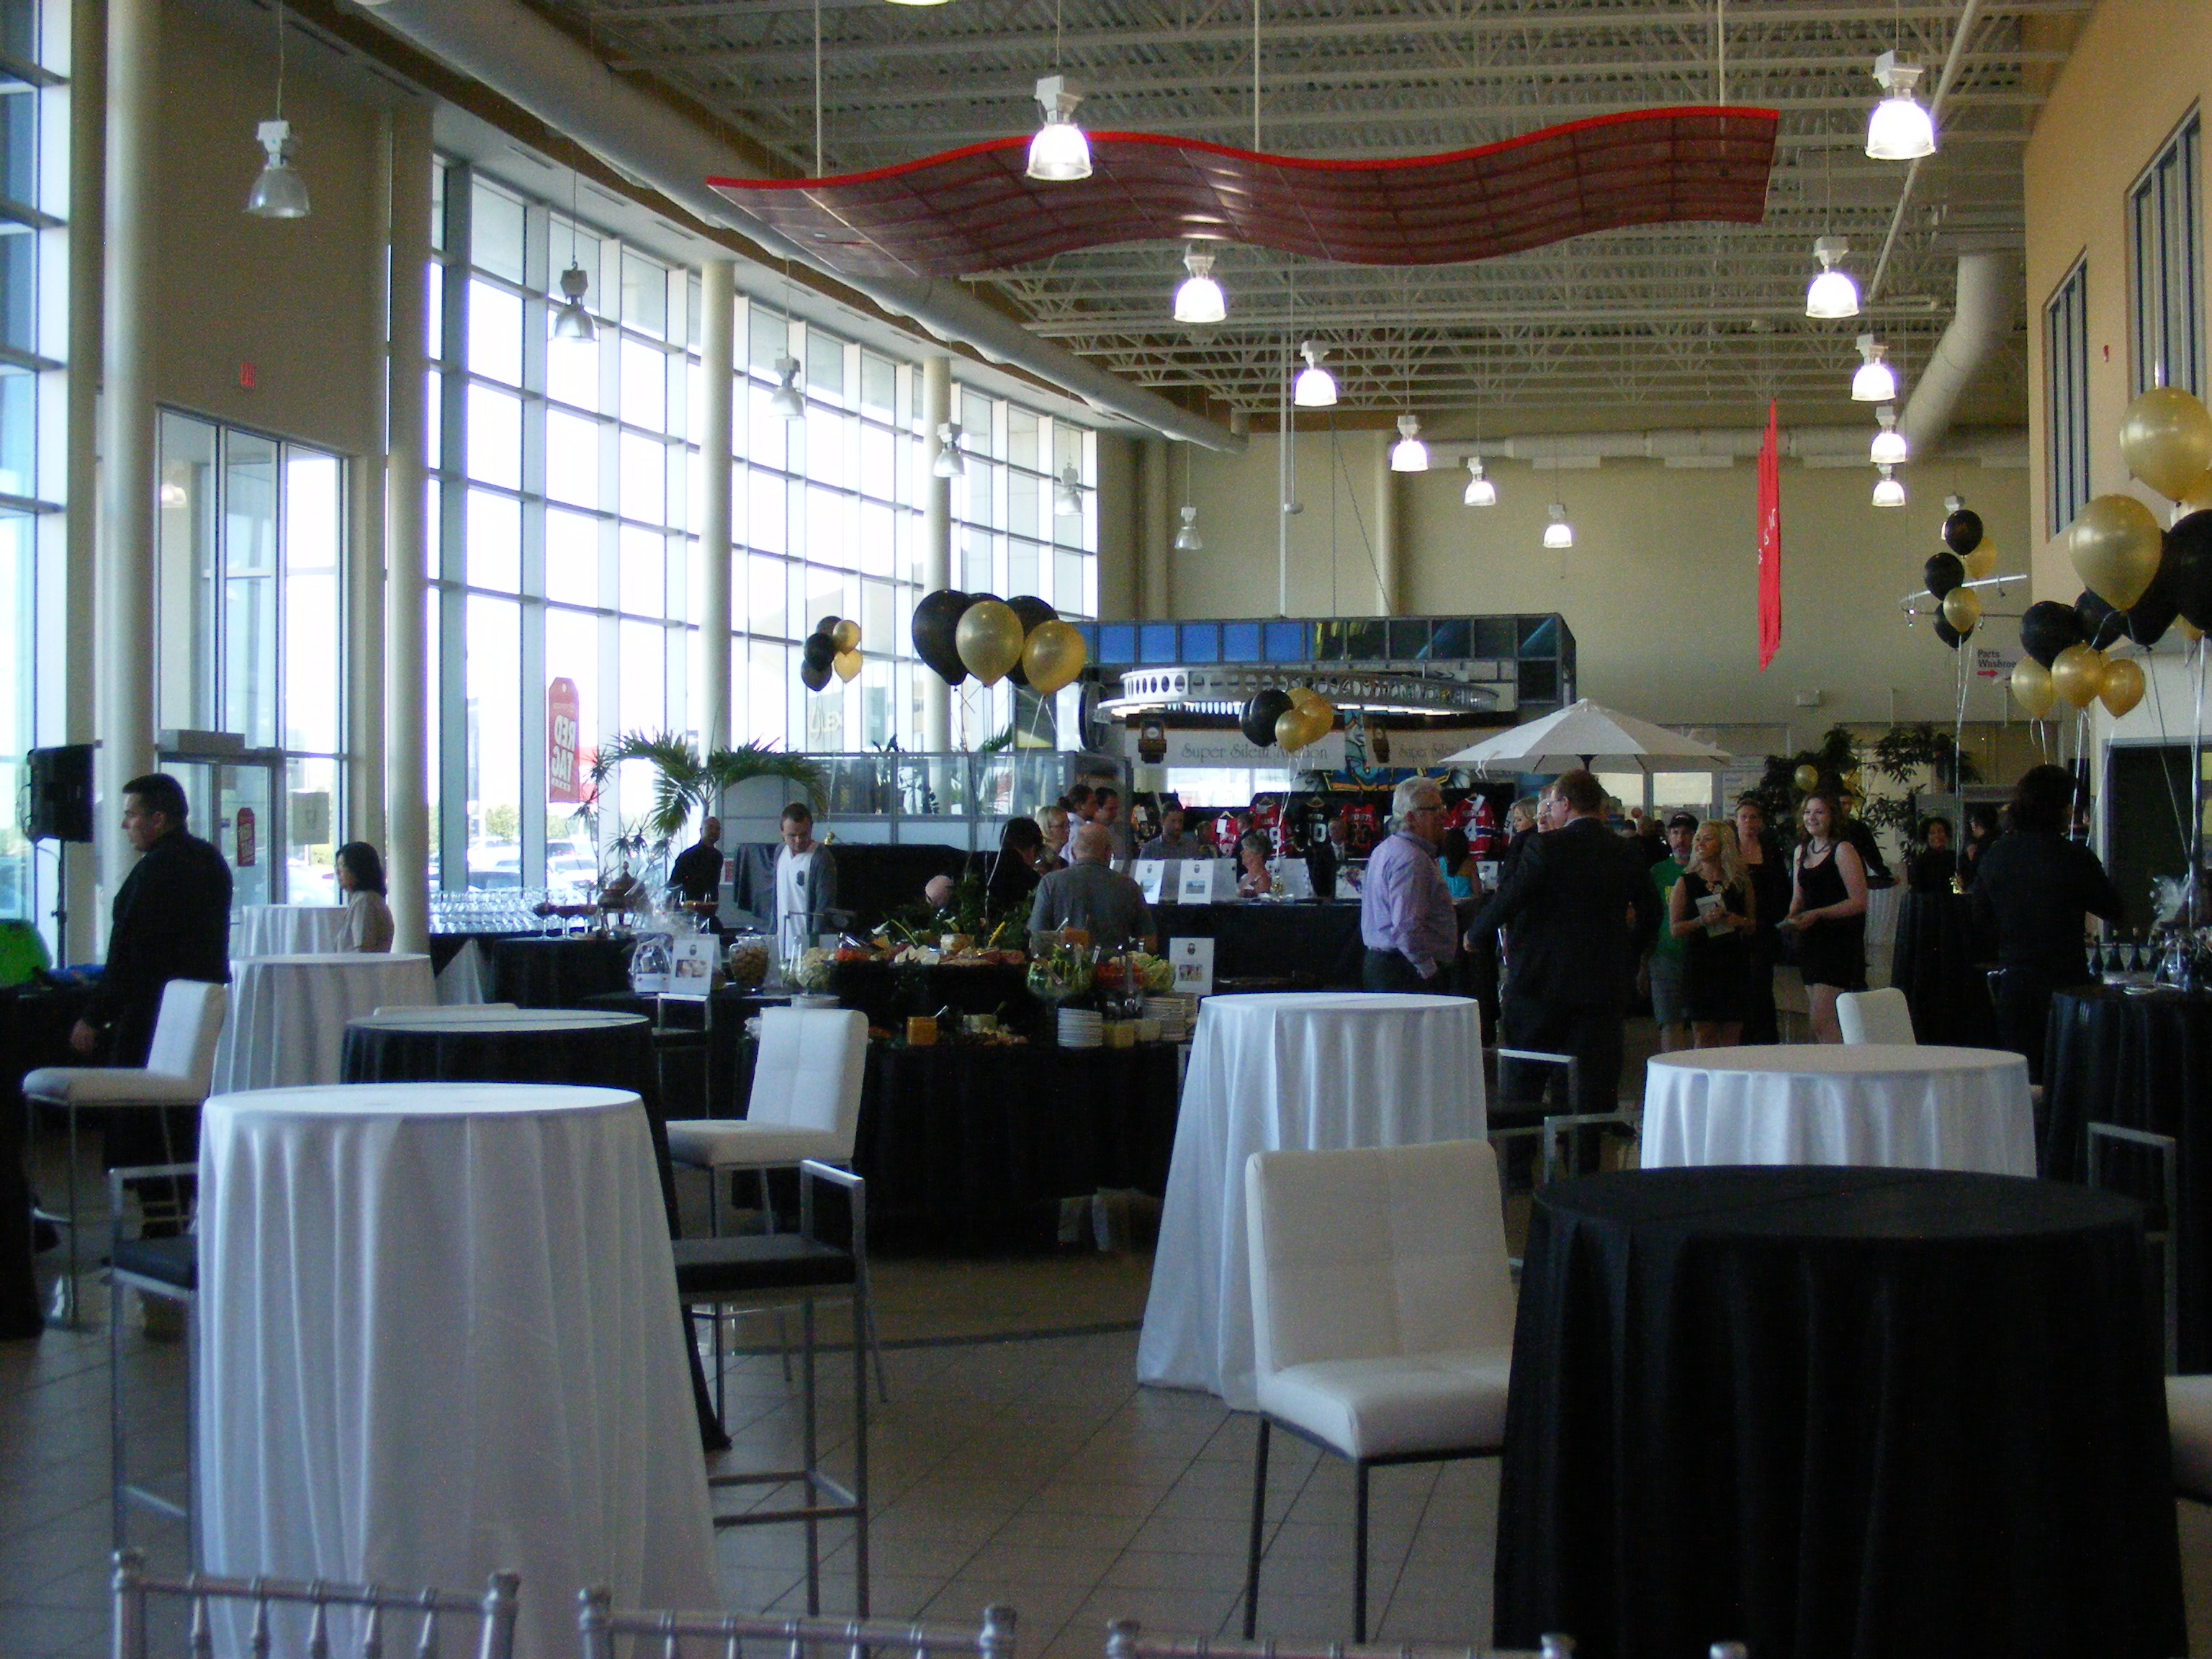 a dealership setup for an event with high bar top table scattered about